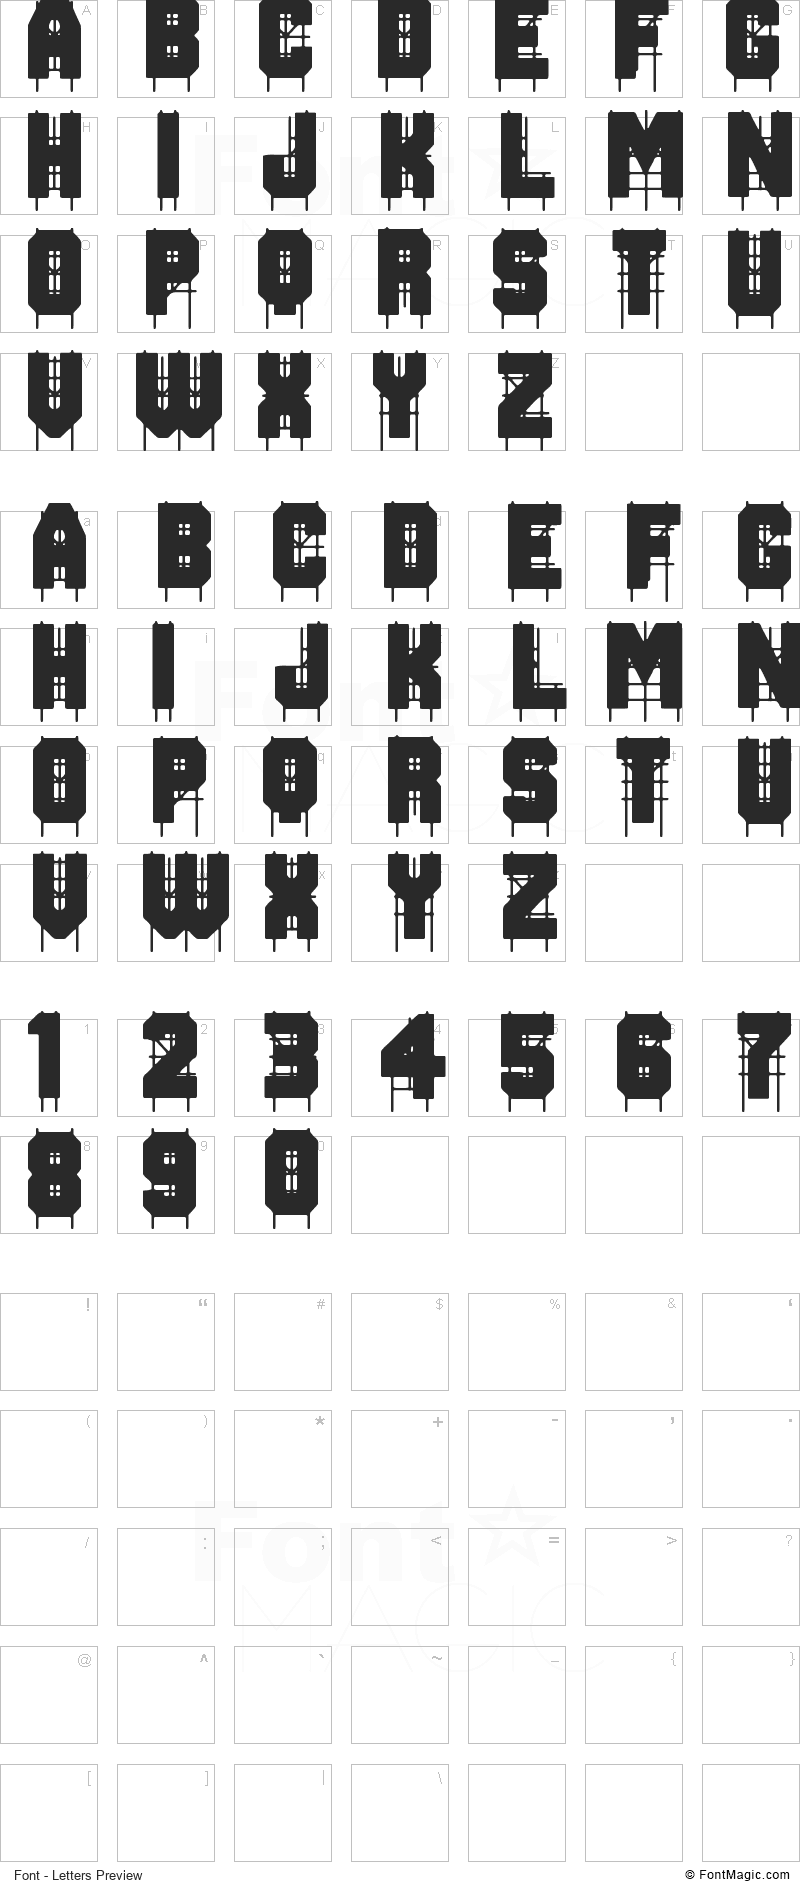 On The Tops Font - All Latters Preview Chart